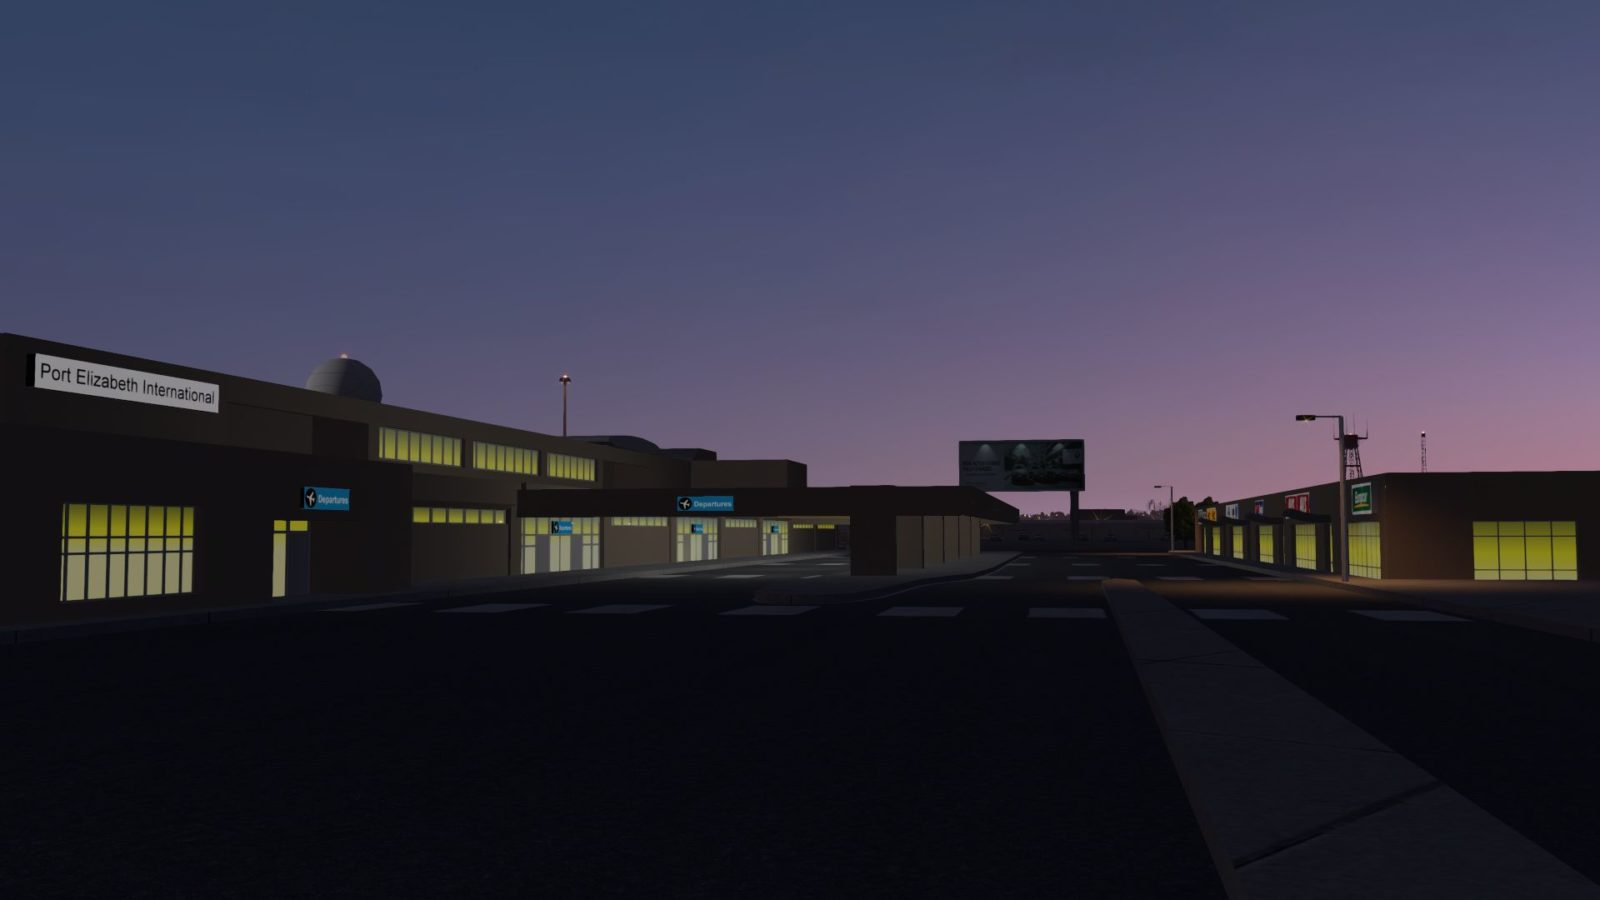 Nmg port elizabeth intl airport v3 5 xp11 nmg simulations - Port elizabeth airport address ...